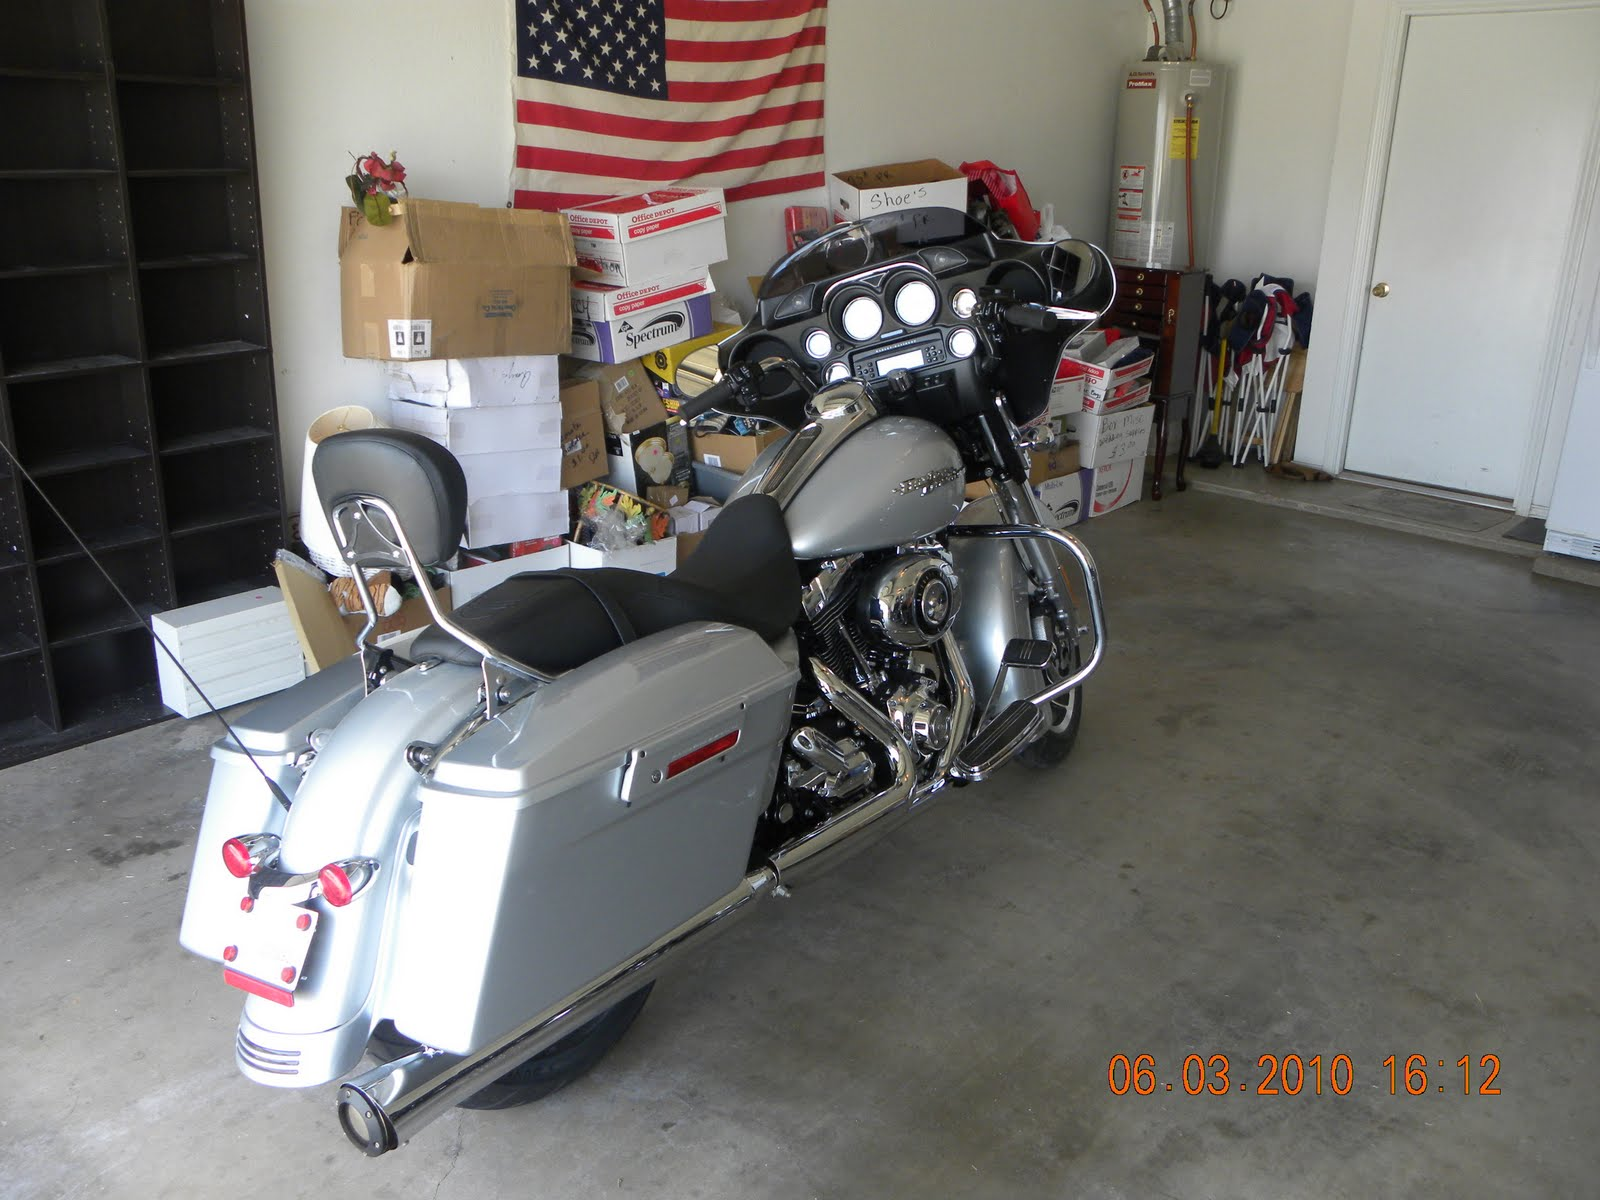 5b72c354 This is a 2010 Harley Street Glide. This thing has all kinds of goodies on  it.